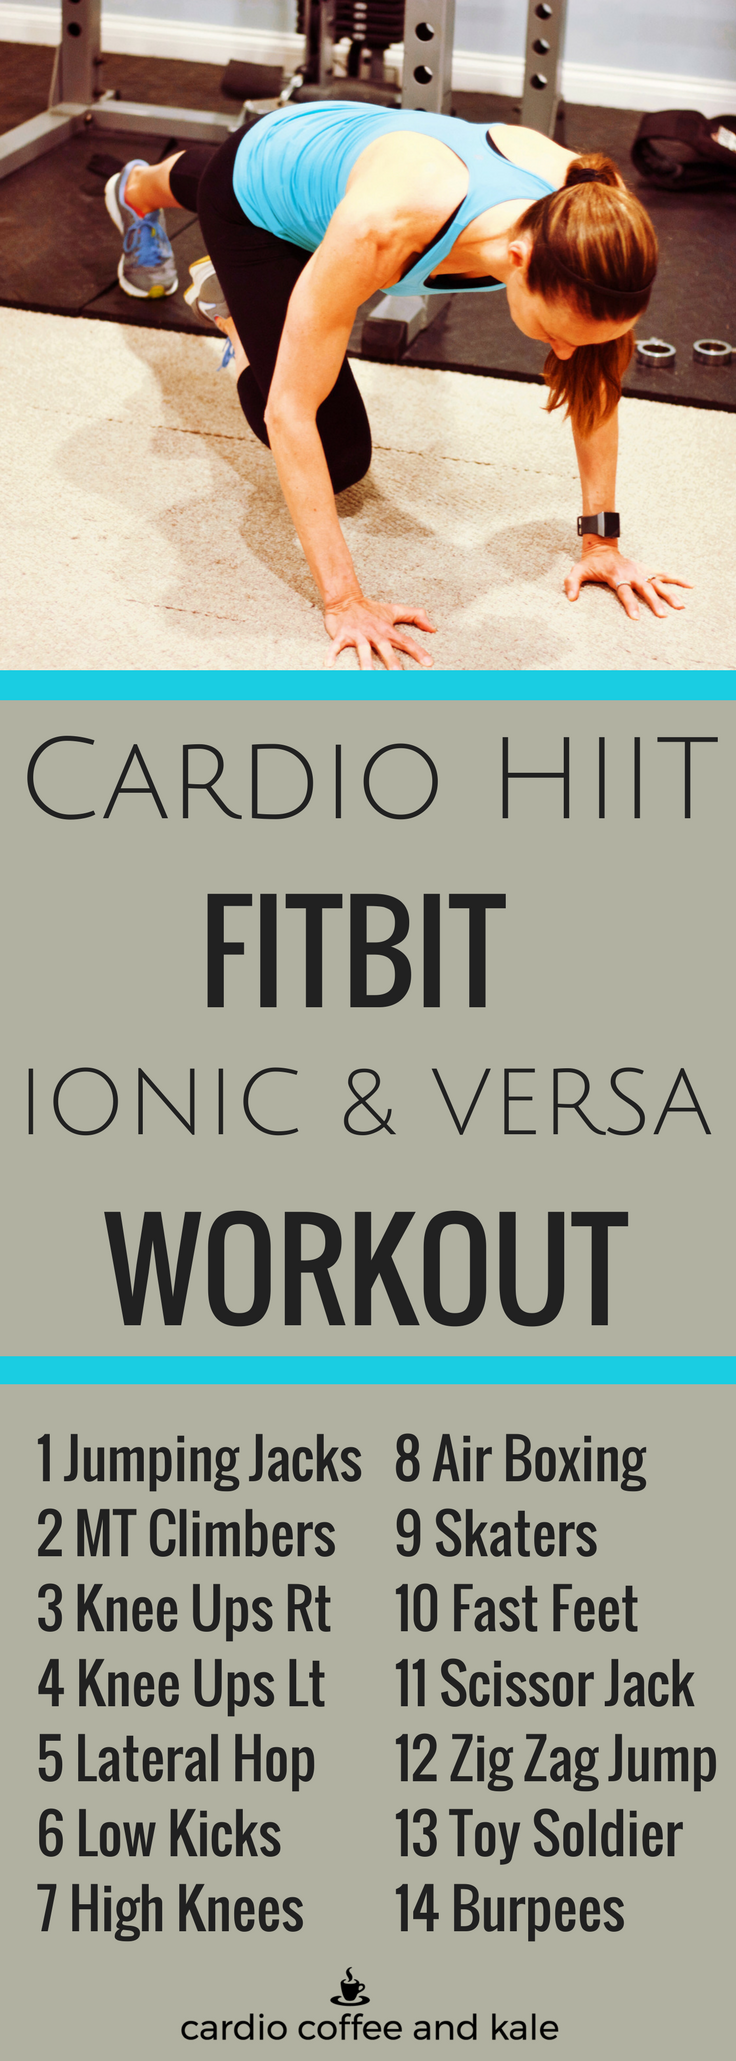 This workout is the ultimate cardio HIIT workout for the Fitbit Ionic and Versa Interval Timer.  Don't have the Ionic or Versa?  Just use the timer on your phone!  cardiocoffeeandkale.com